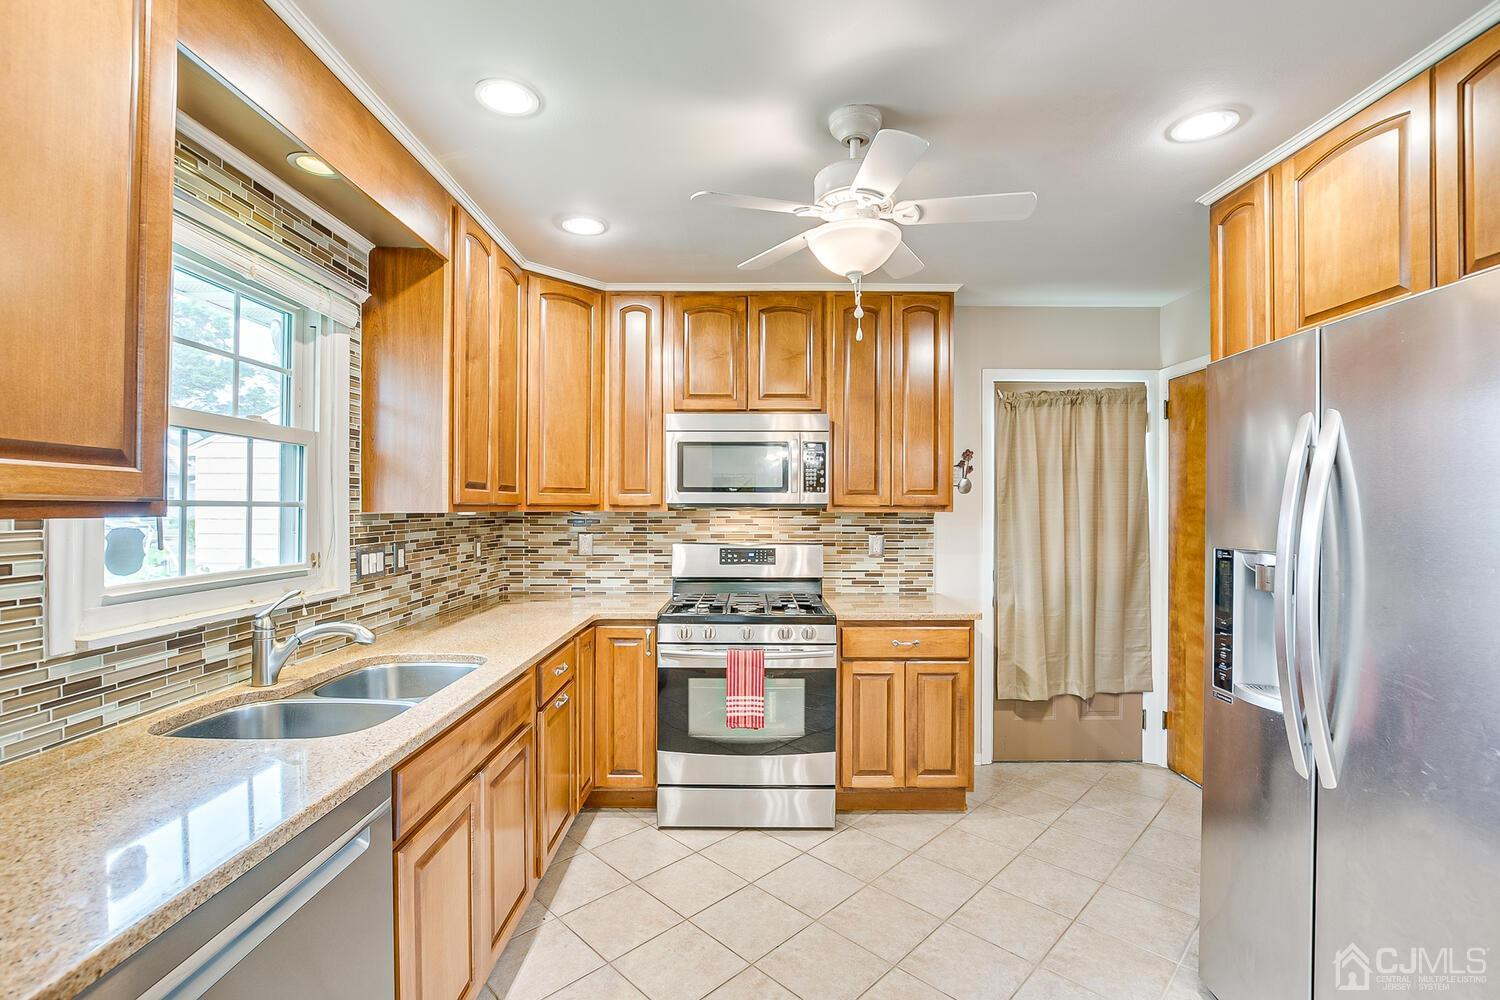 Updated Kitchen, quartz Counters, Beautiful Backsplash, Recessed Lighting and Stainless Steel Appliances.